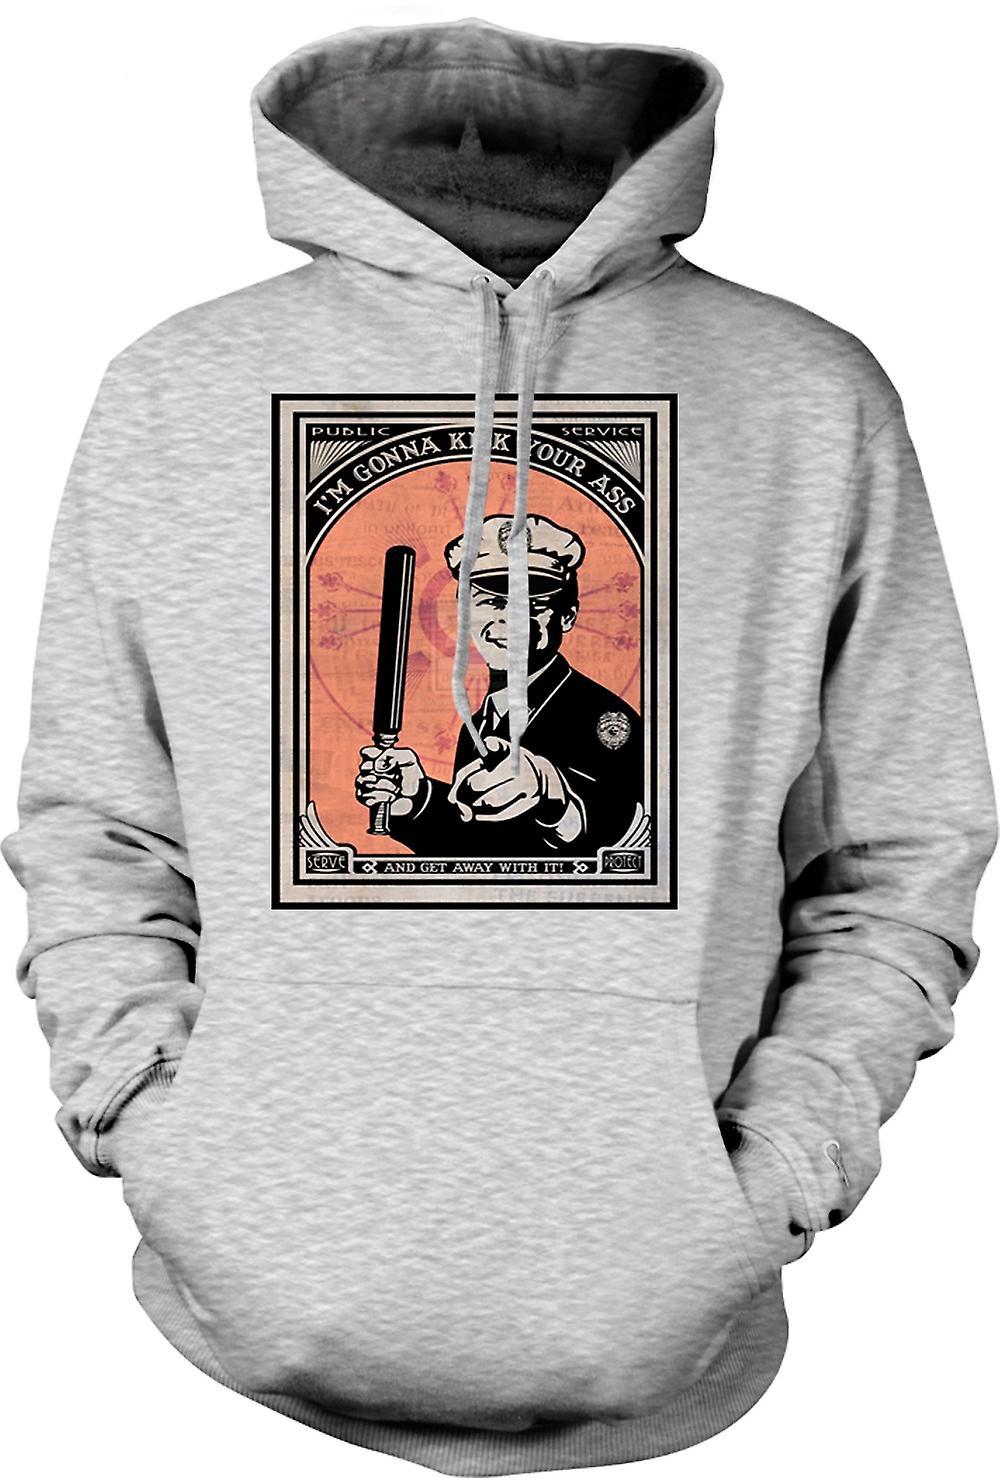 Mens Hoodie - État policier - Im Gonna Kick Your Ass